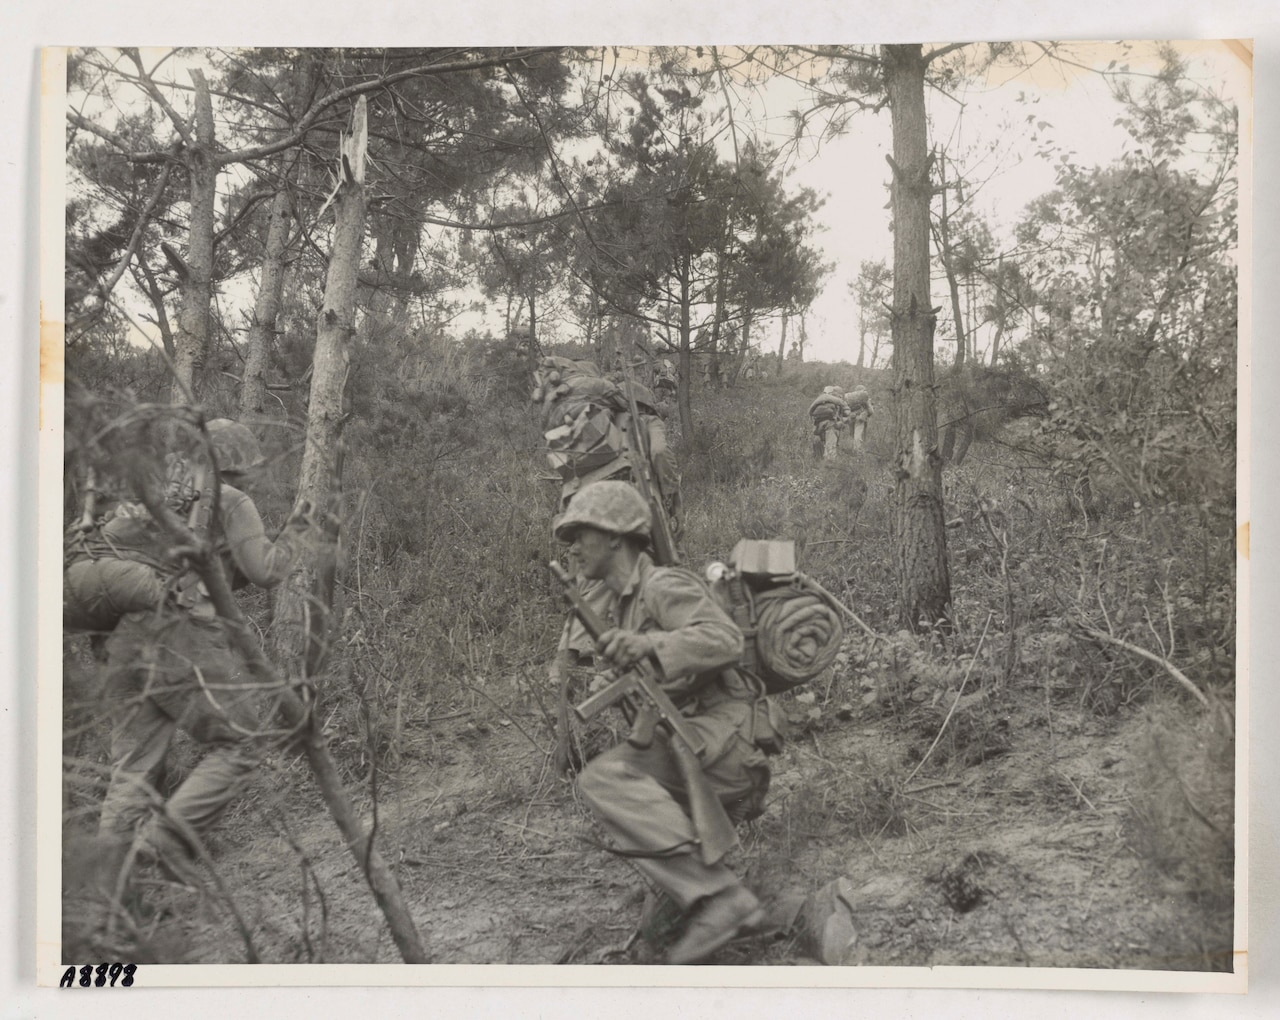 Men in combat uniform make their way up a heavily forested hill.